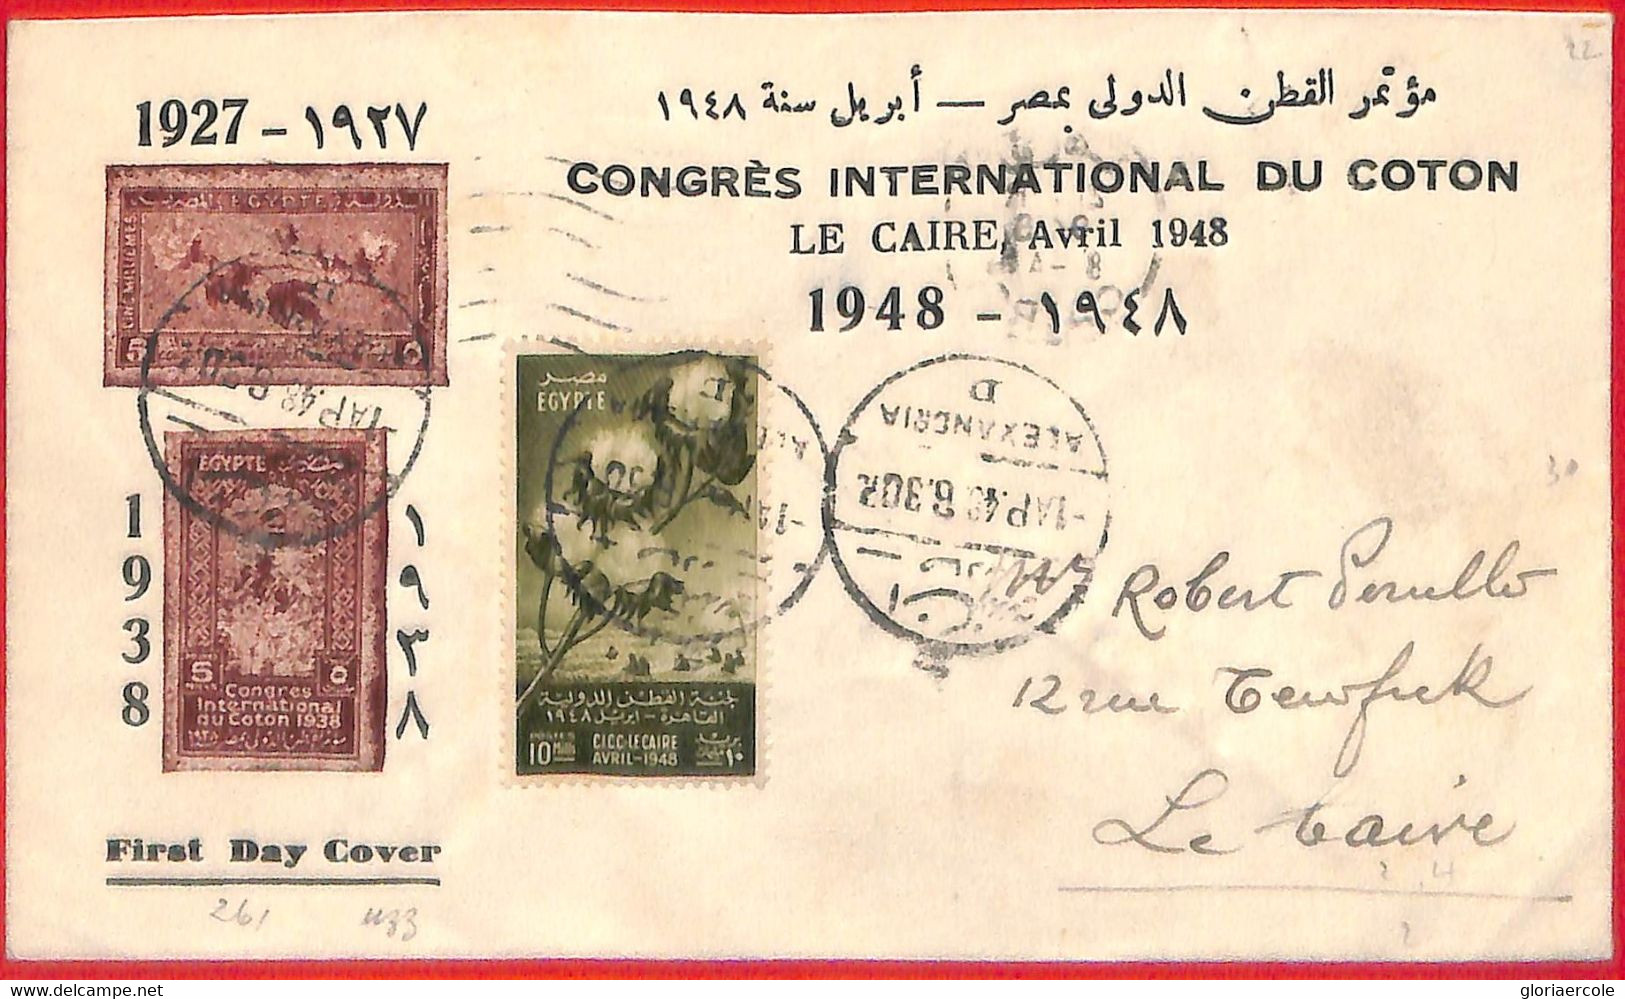 Aa2389 - EGYPT - Postal History - FDC COVER  Cotton International Congress 1948 - Covers & Documents